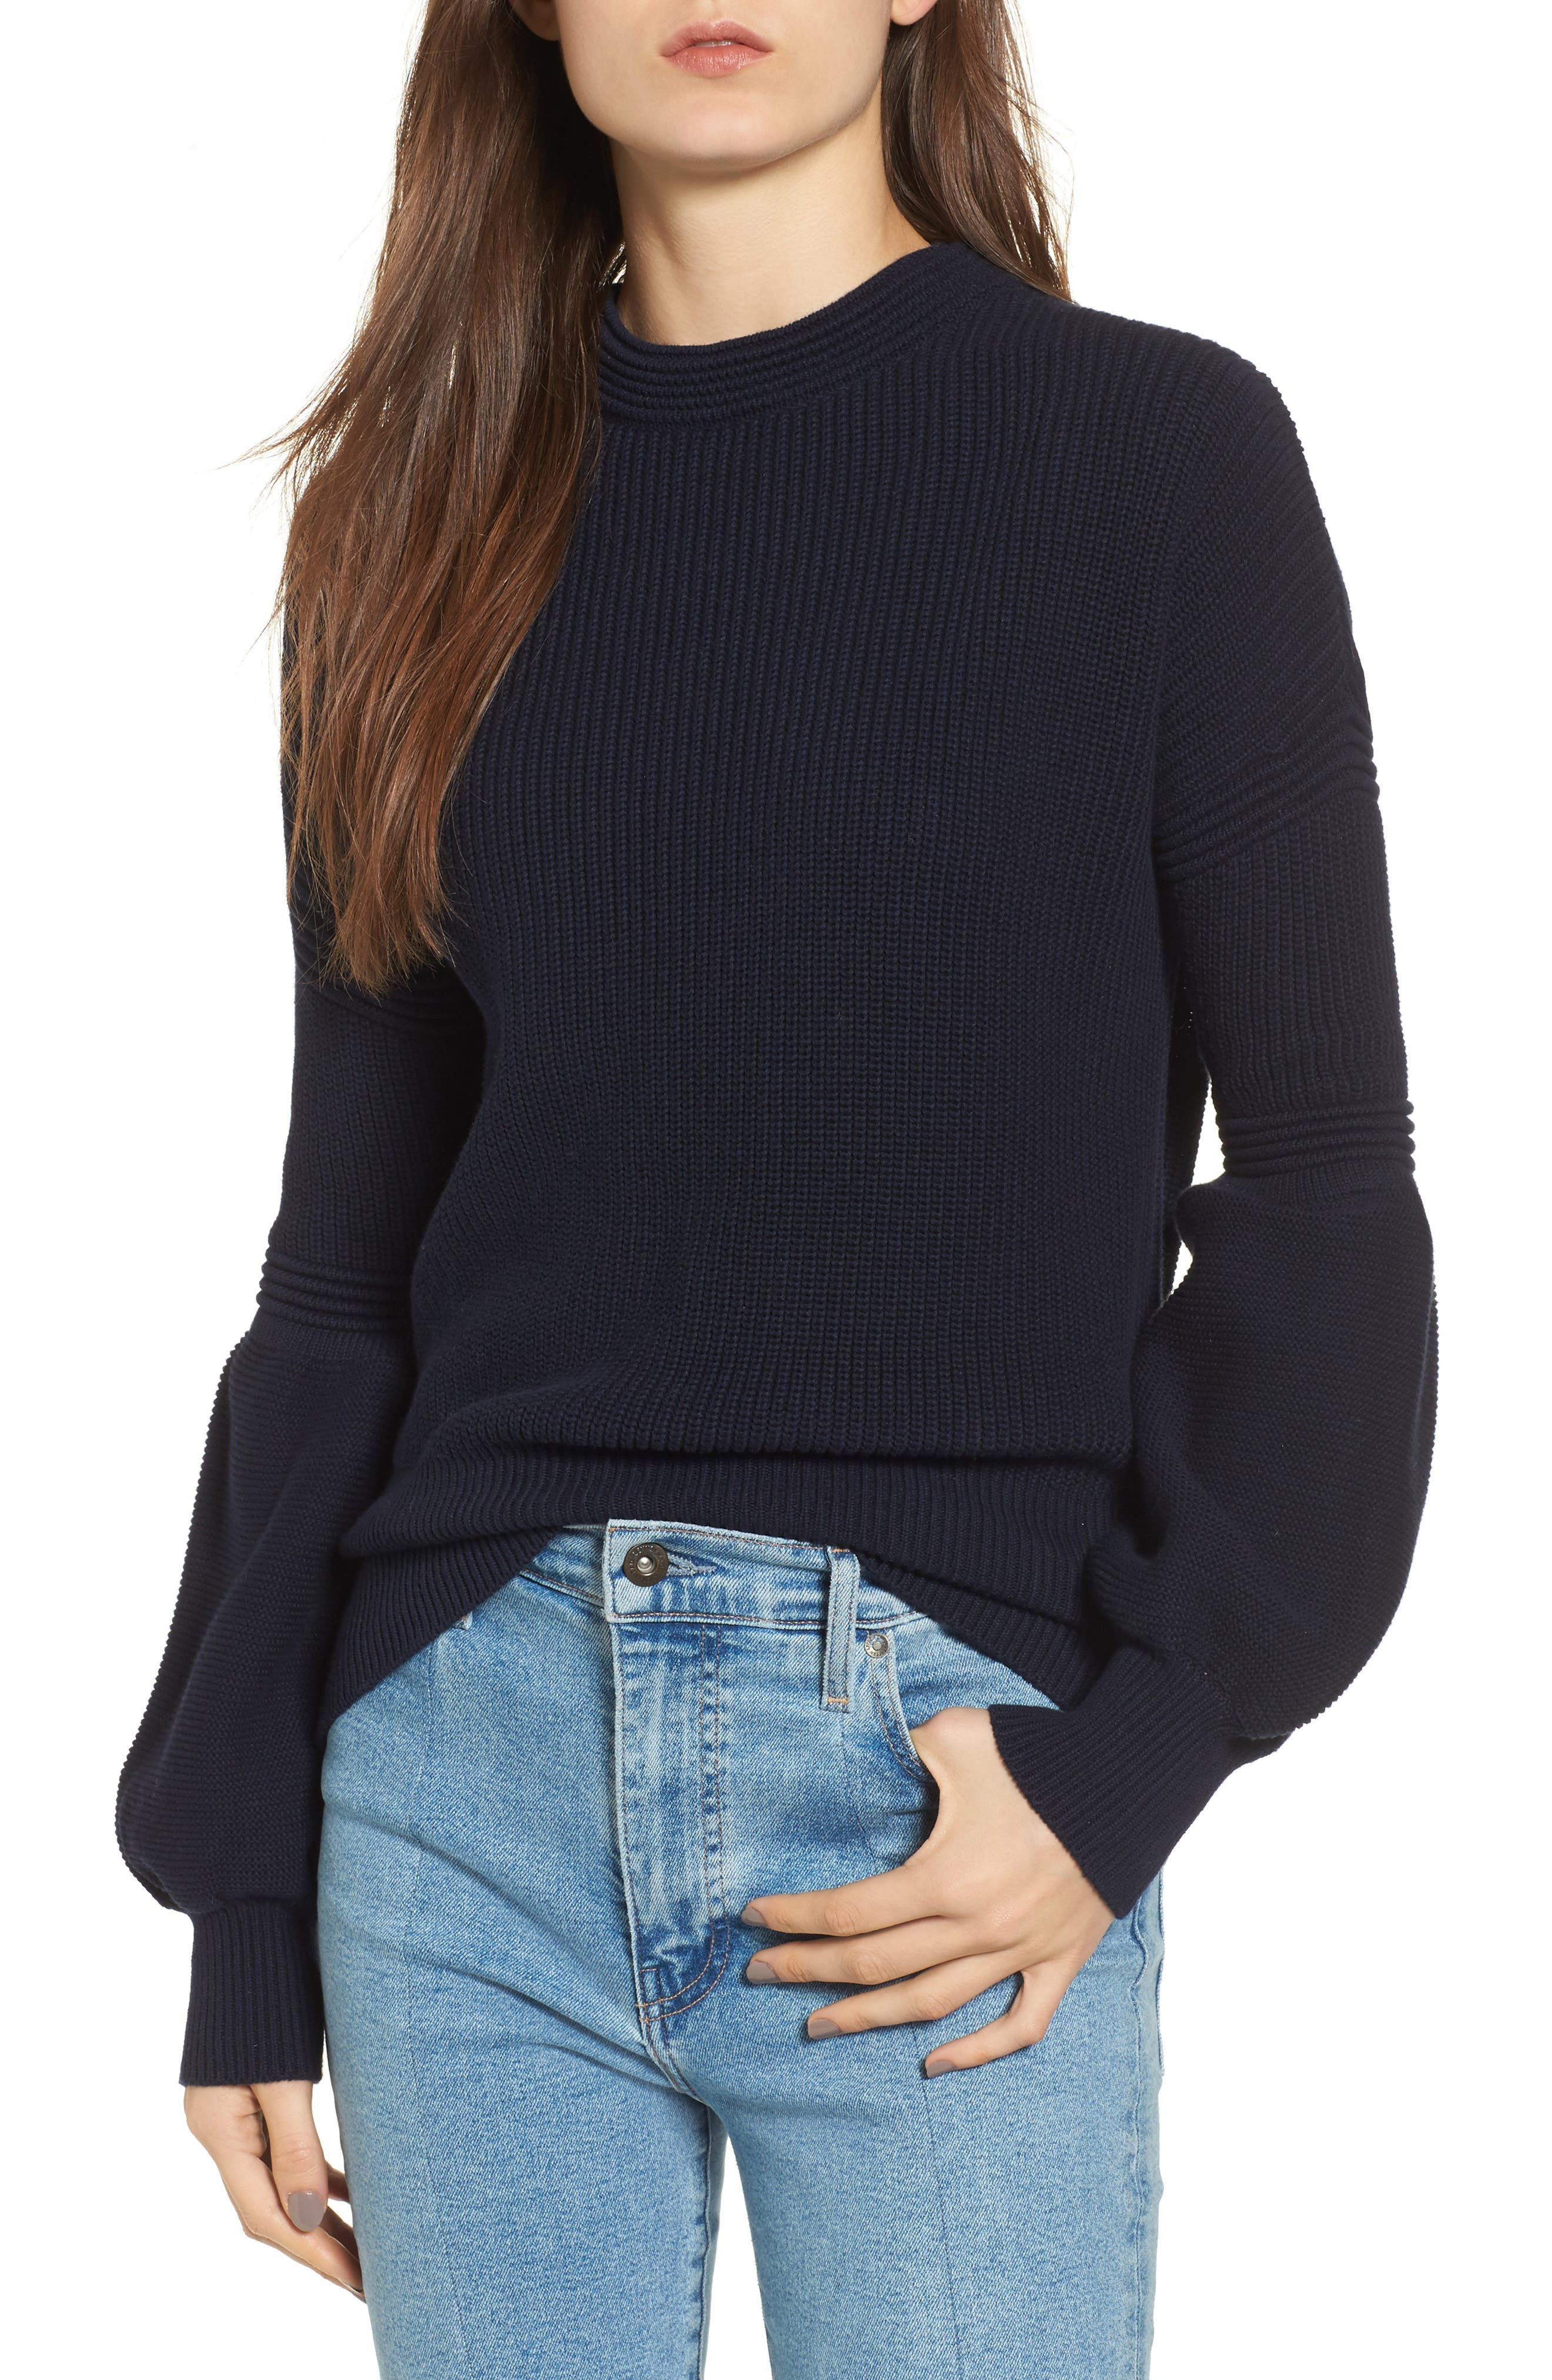 Sculpture Puff Sleeve Sweater,                             Main thumbnail 1, color,                             410